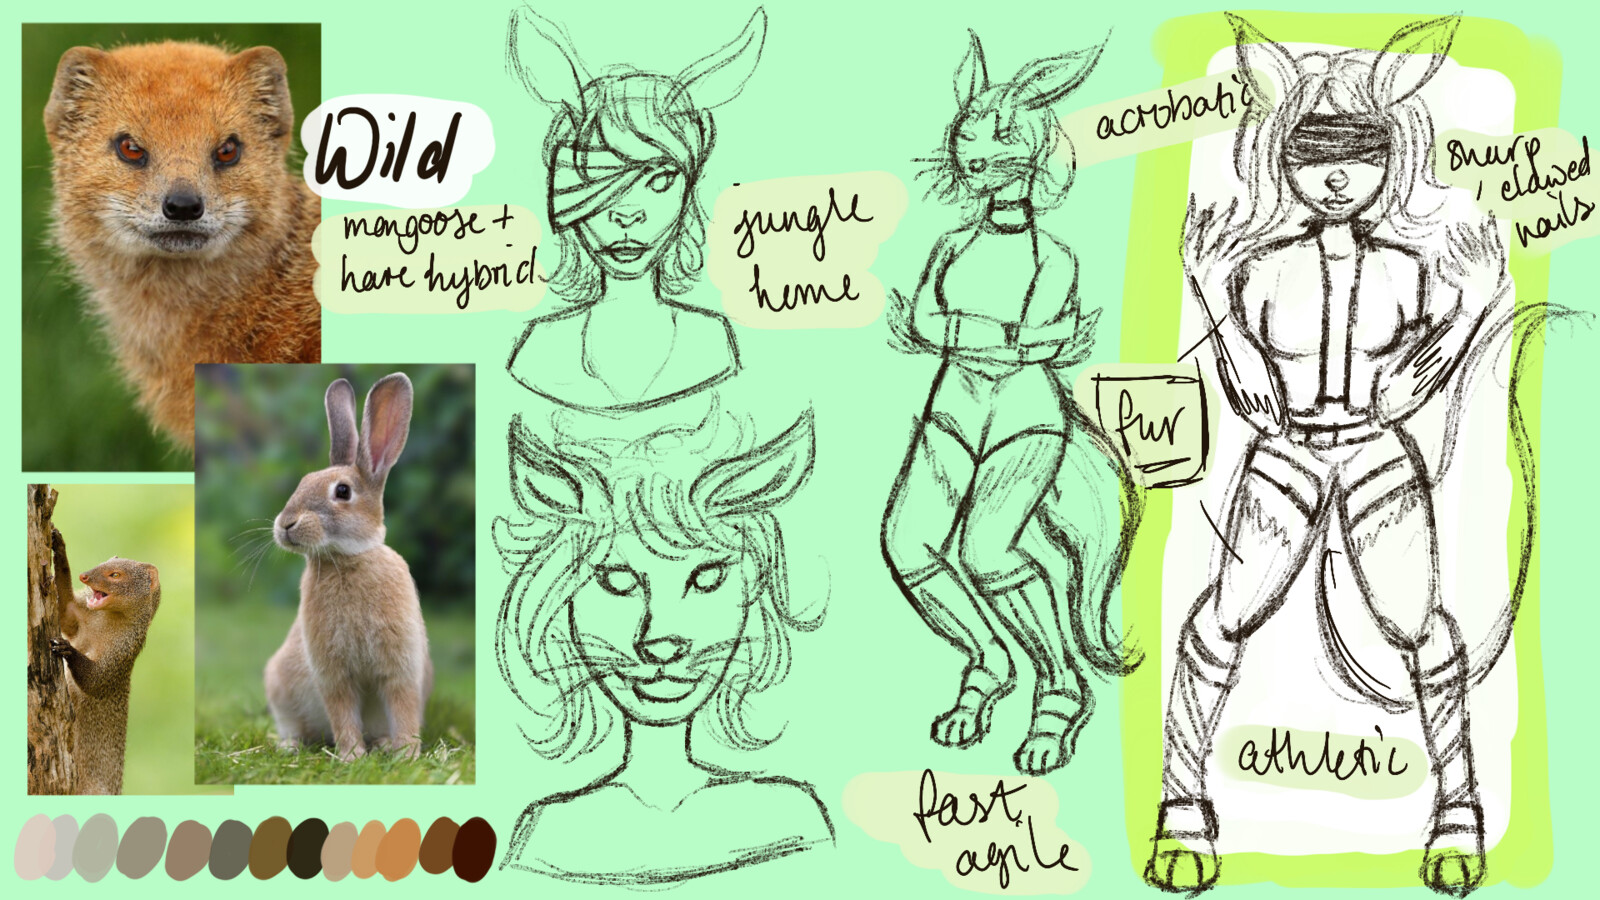 my initial ideas Aspen started off as being my wild character but I changed my mind as i wanted her to have a companion character